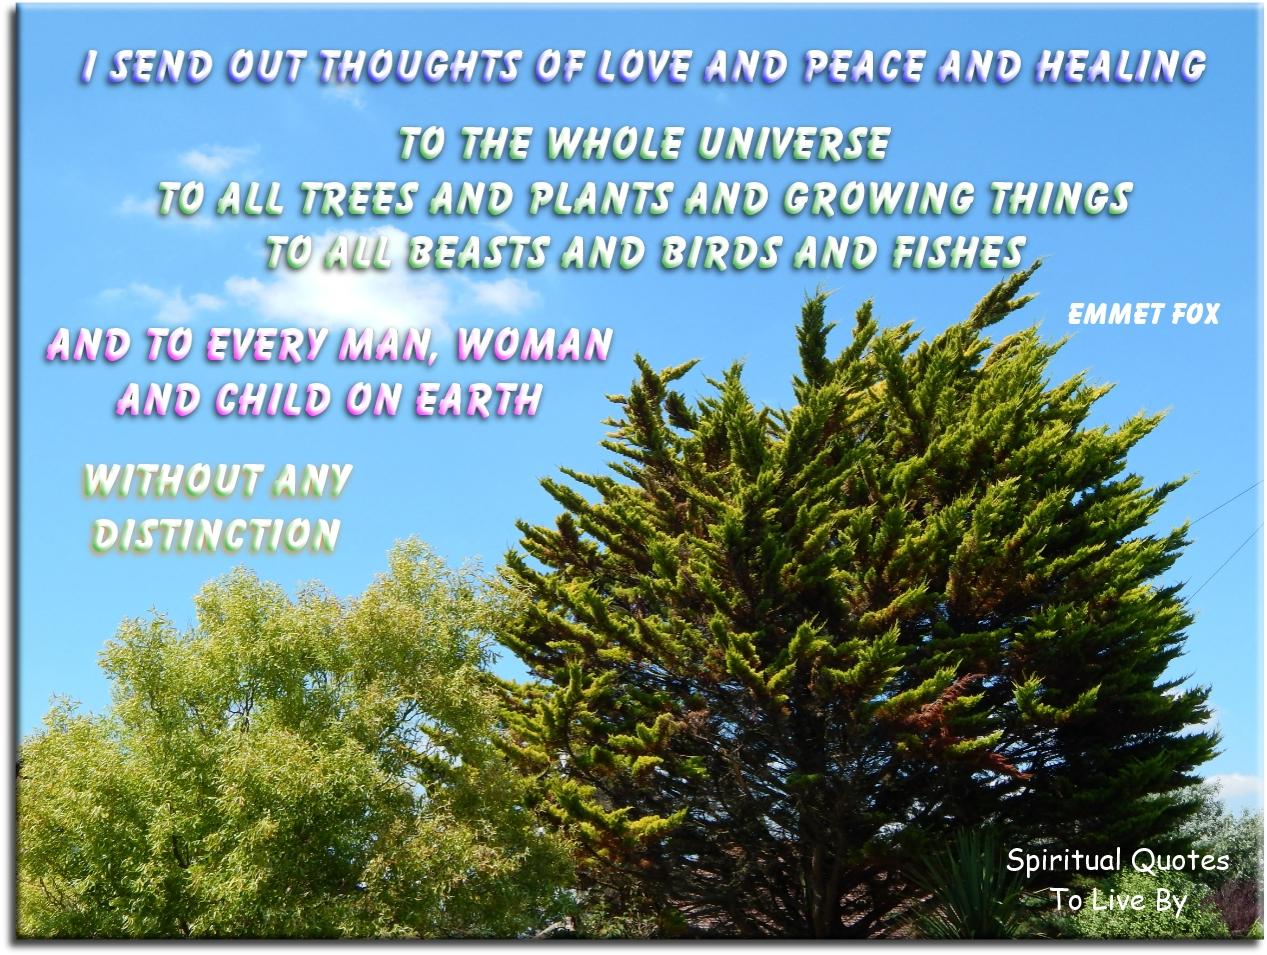 Emmet Fox quote: I send out thoughts of love and peace and healing to the whole Universe; to all trees and plants and growing things.. - Spiritual Quotes To Live By